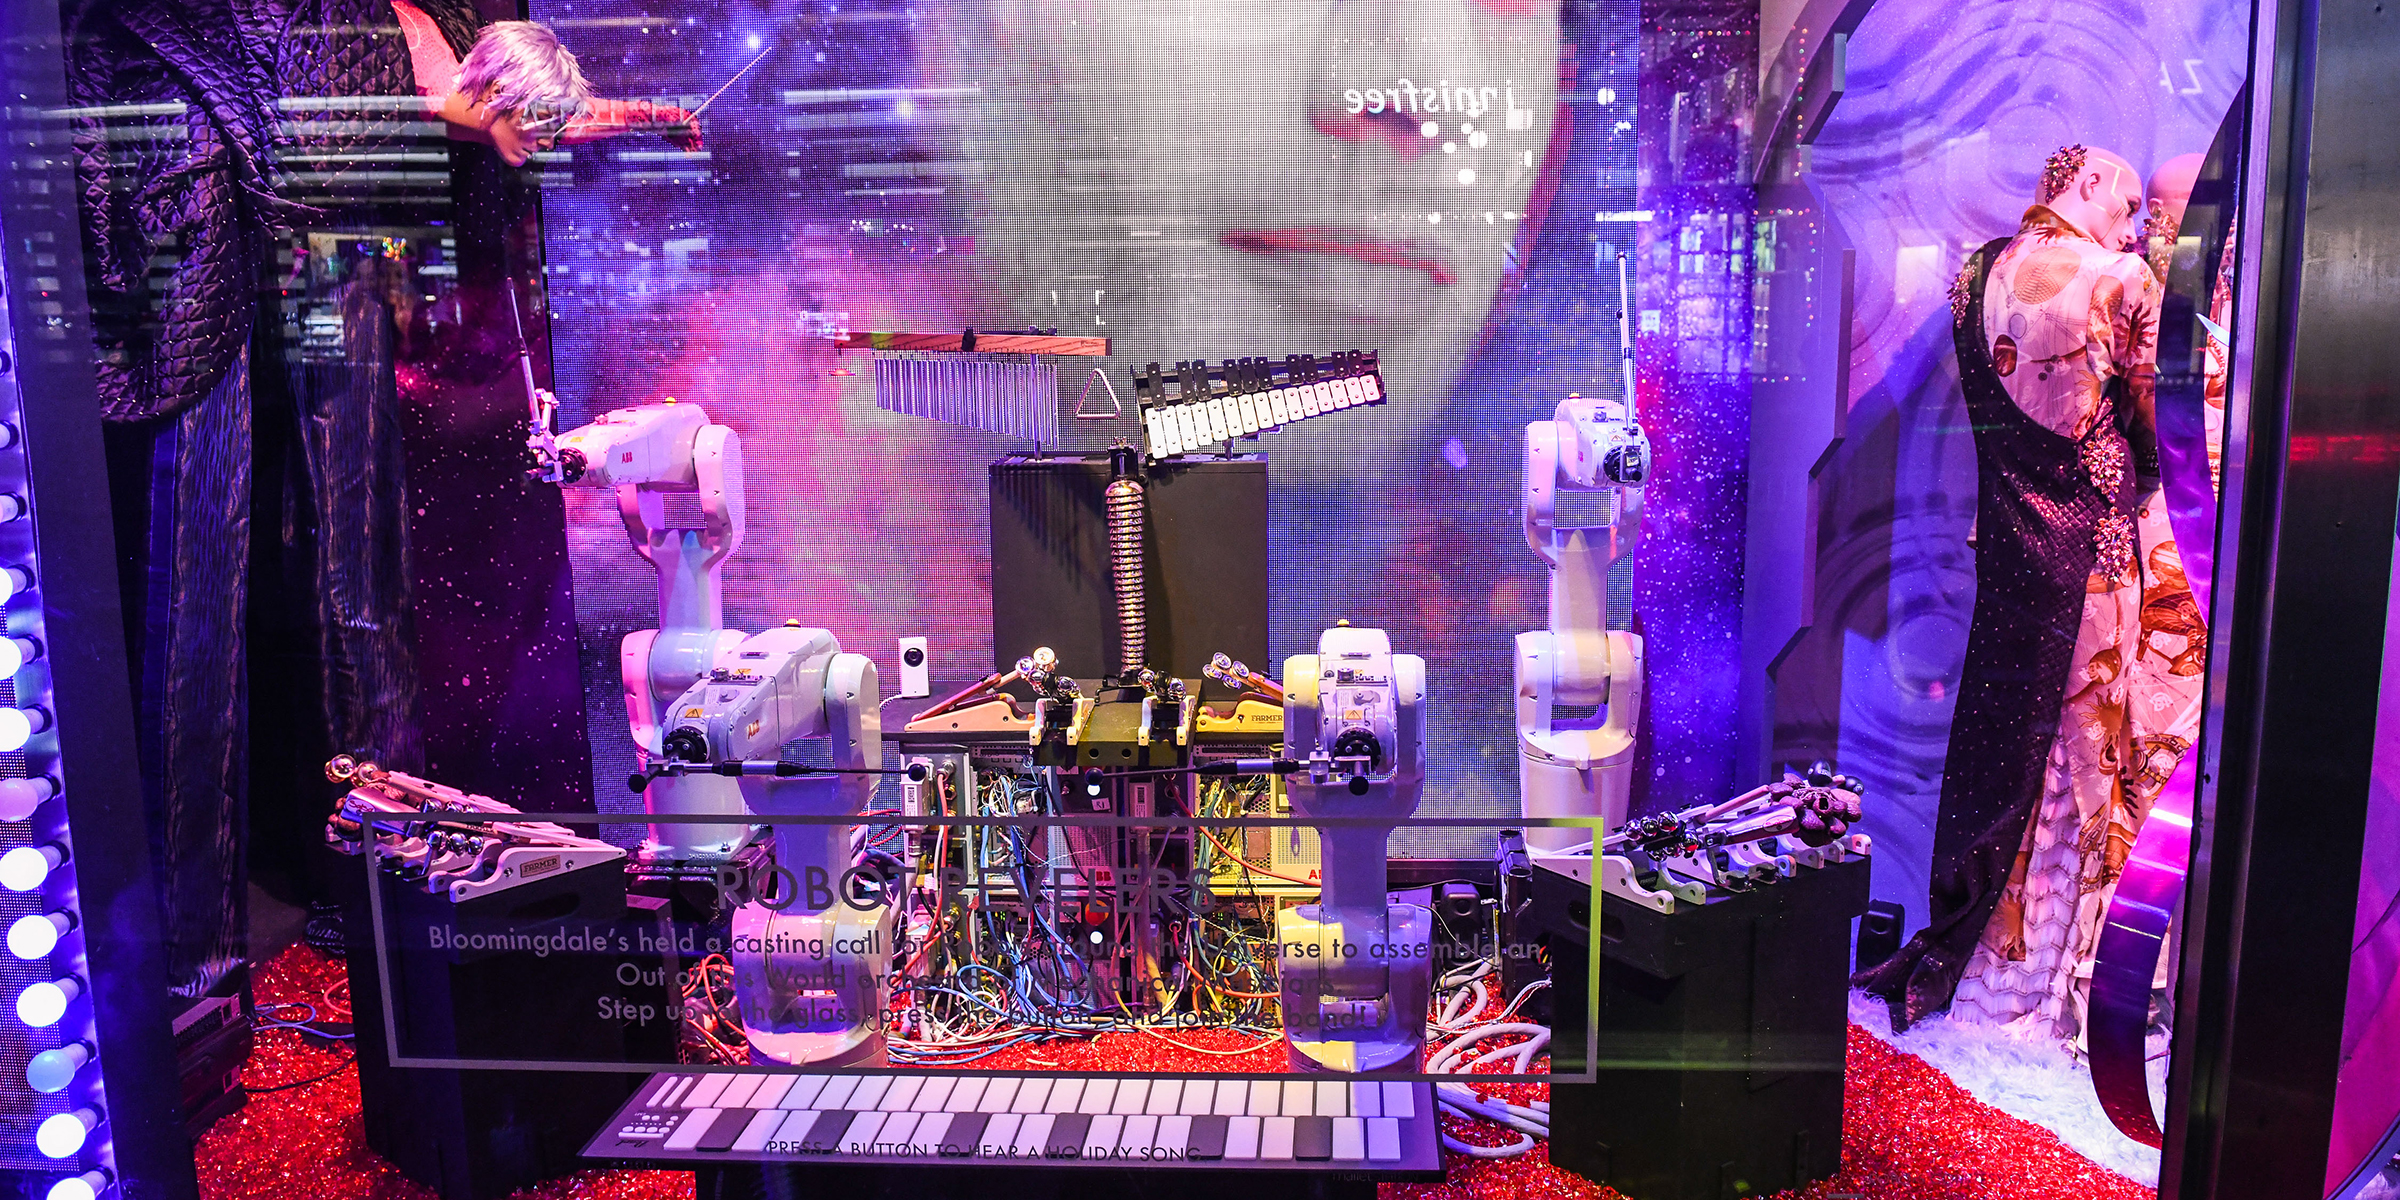 ABB Bloomingdale's robot window display